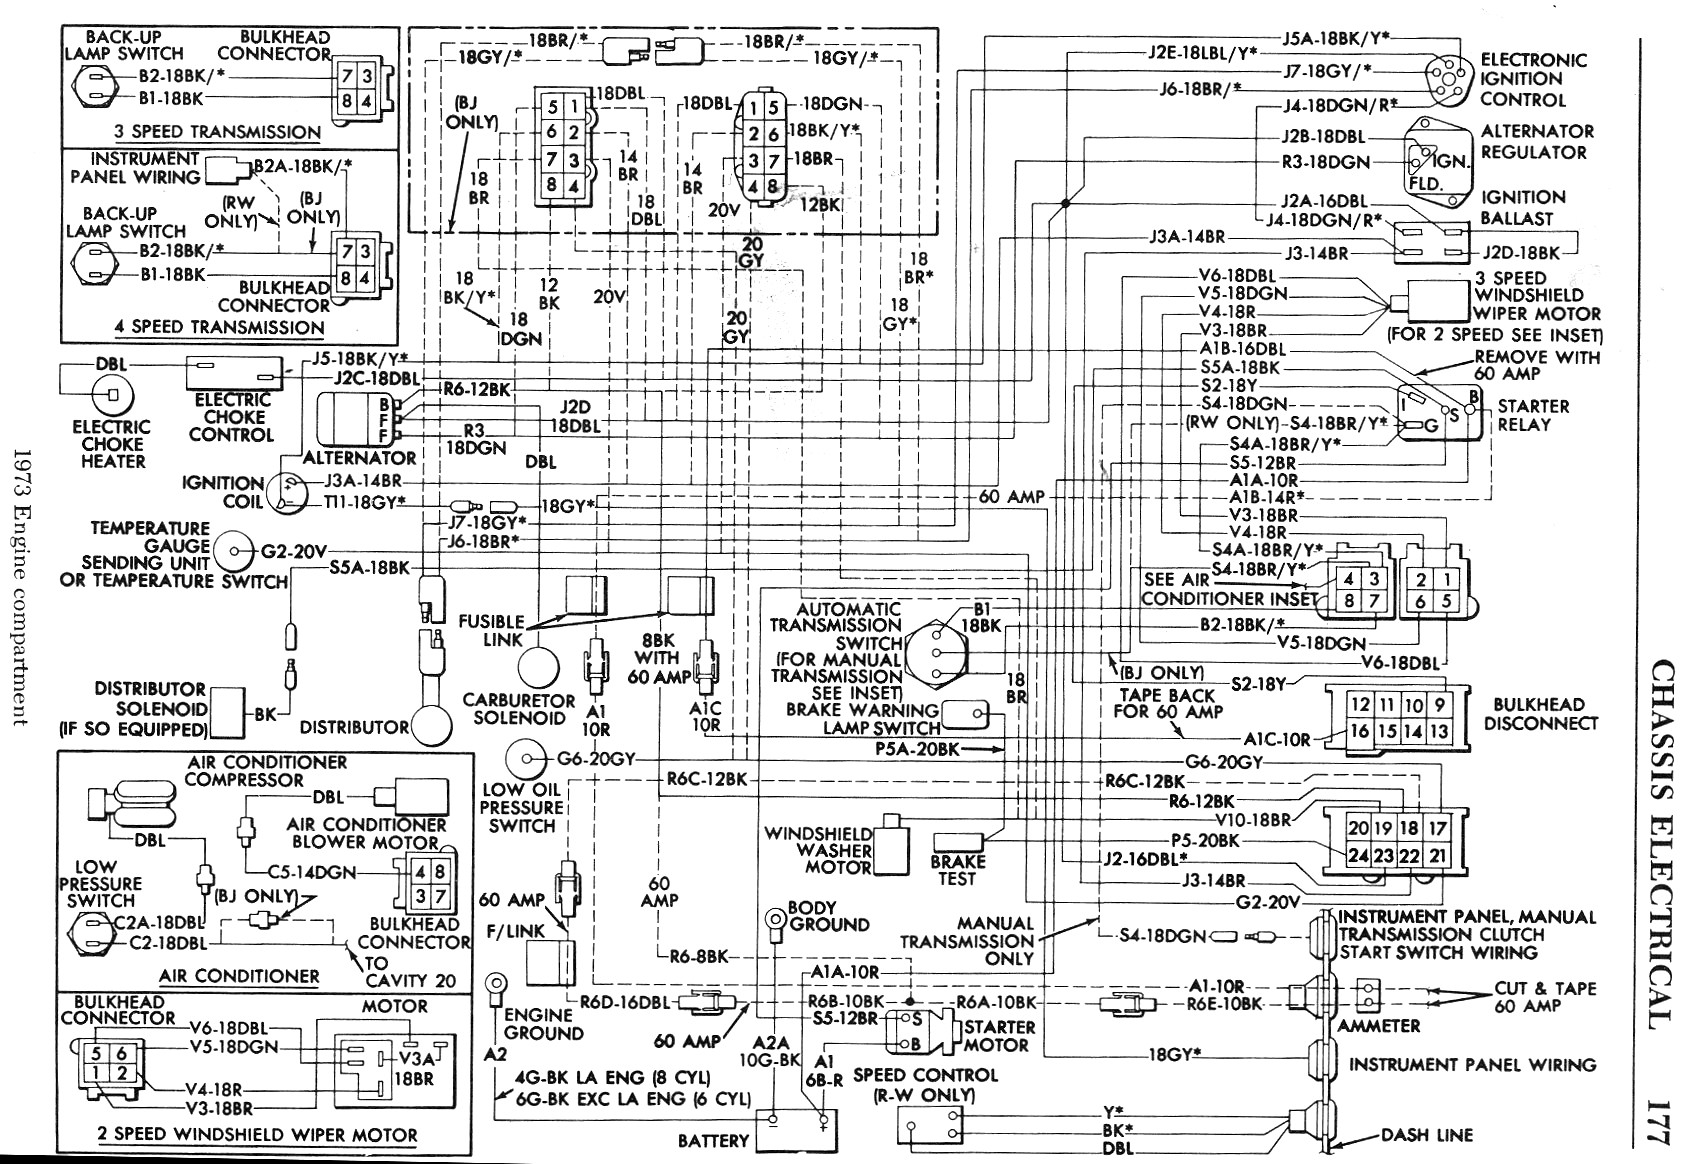 5098823 73B BodyEngineCompartmentWiringDiagram 70 cuda wiring diagram 70 charger wiring diagram \u2022 wiring diagrams wiring diagram for 1968 plymouth roadrunner at aneh.co